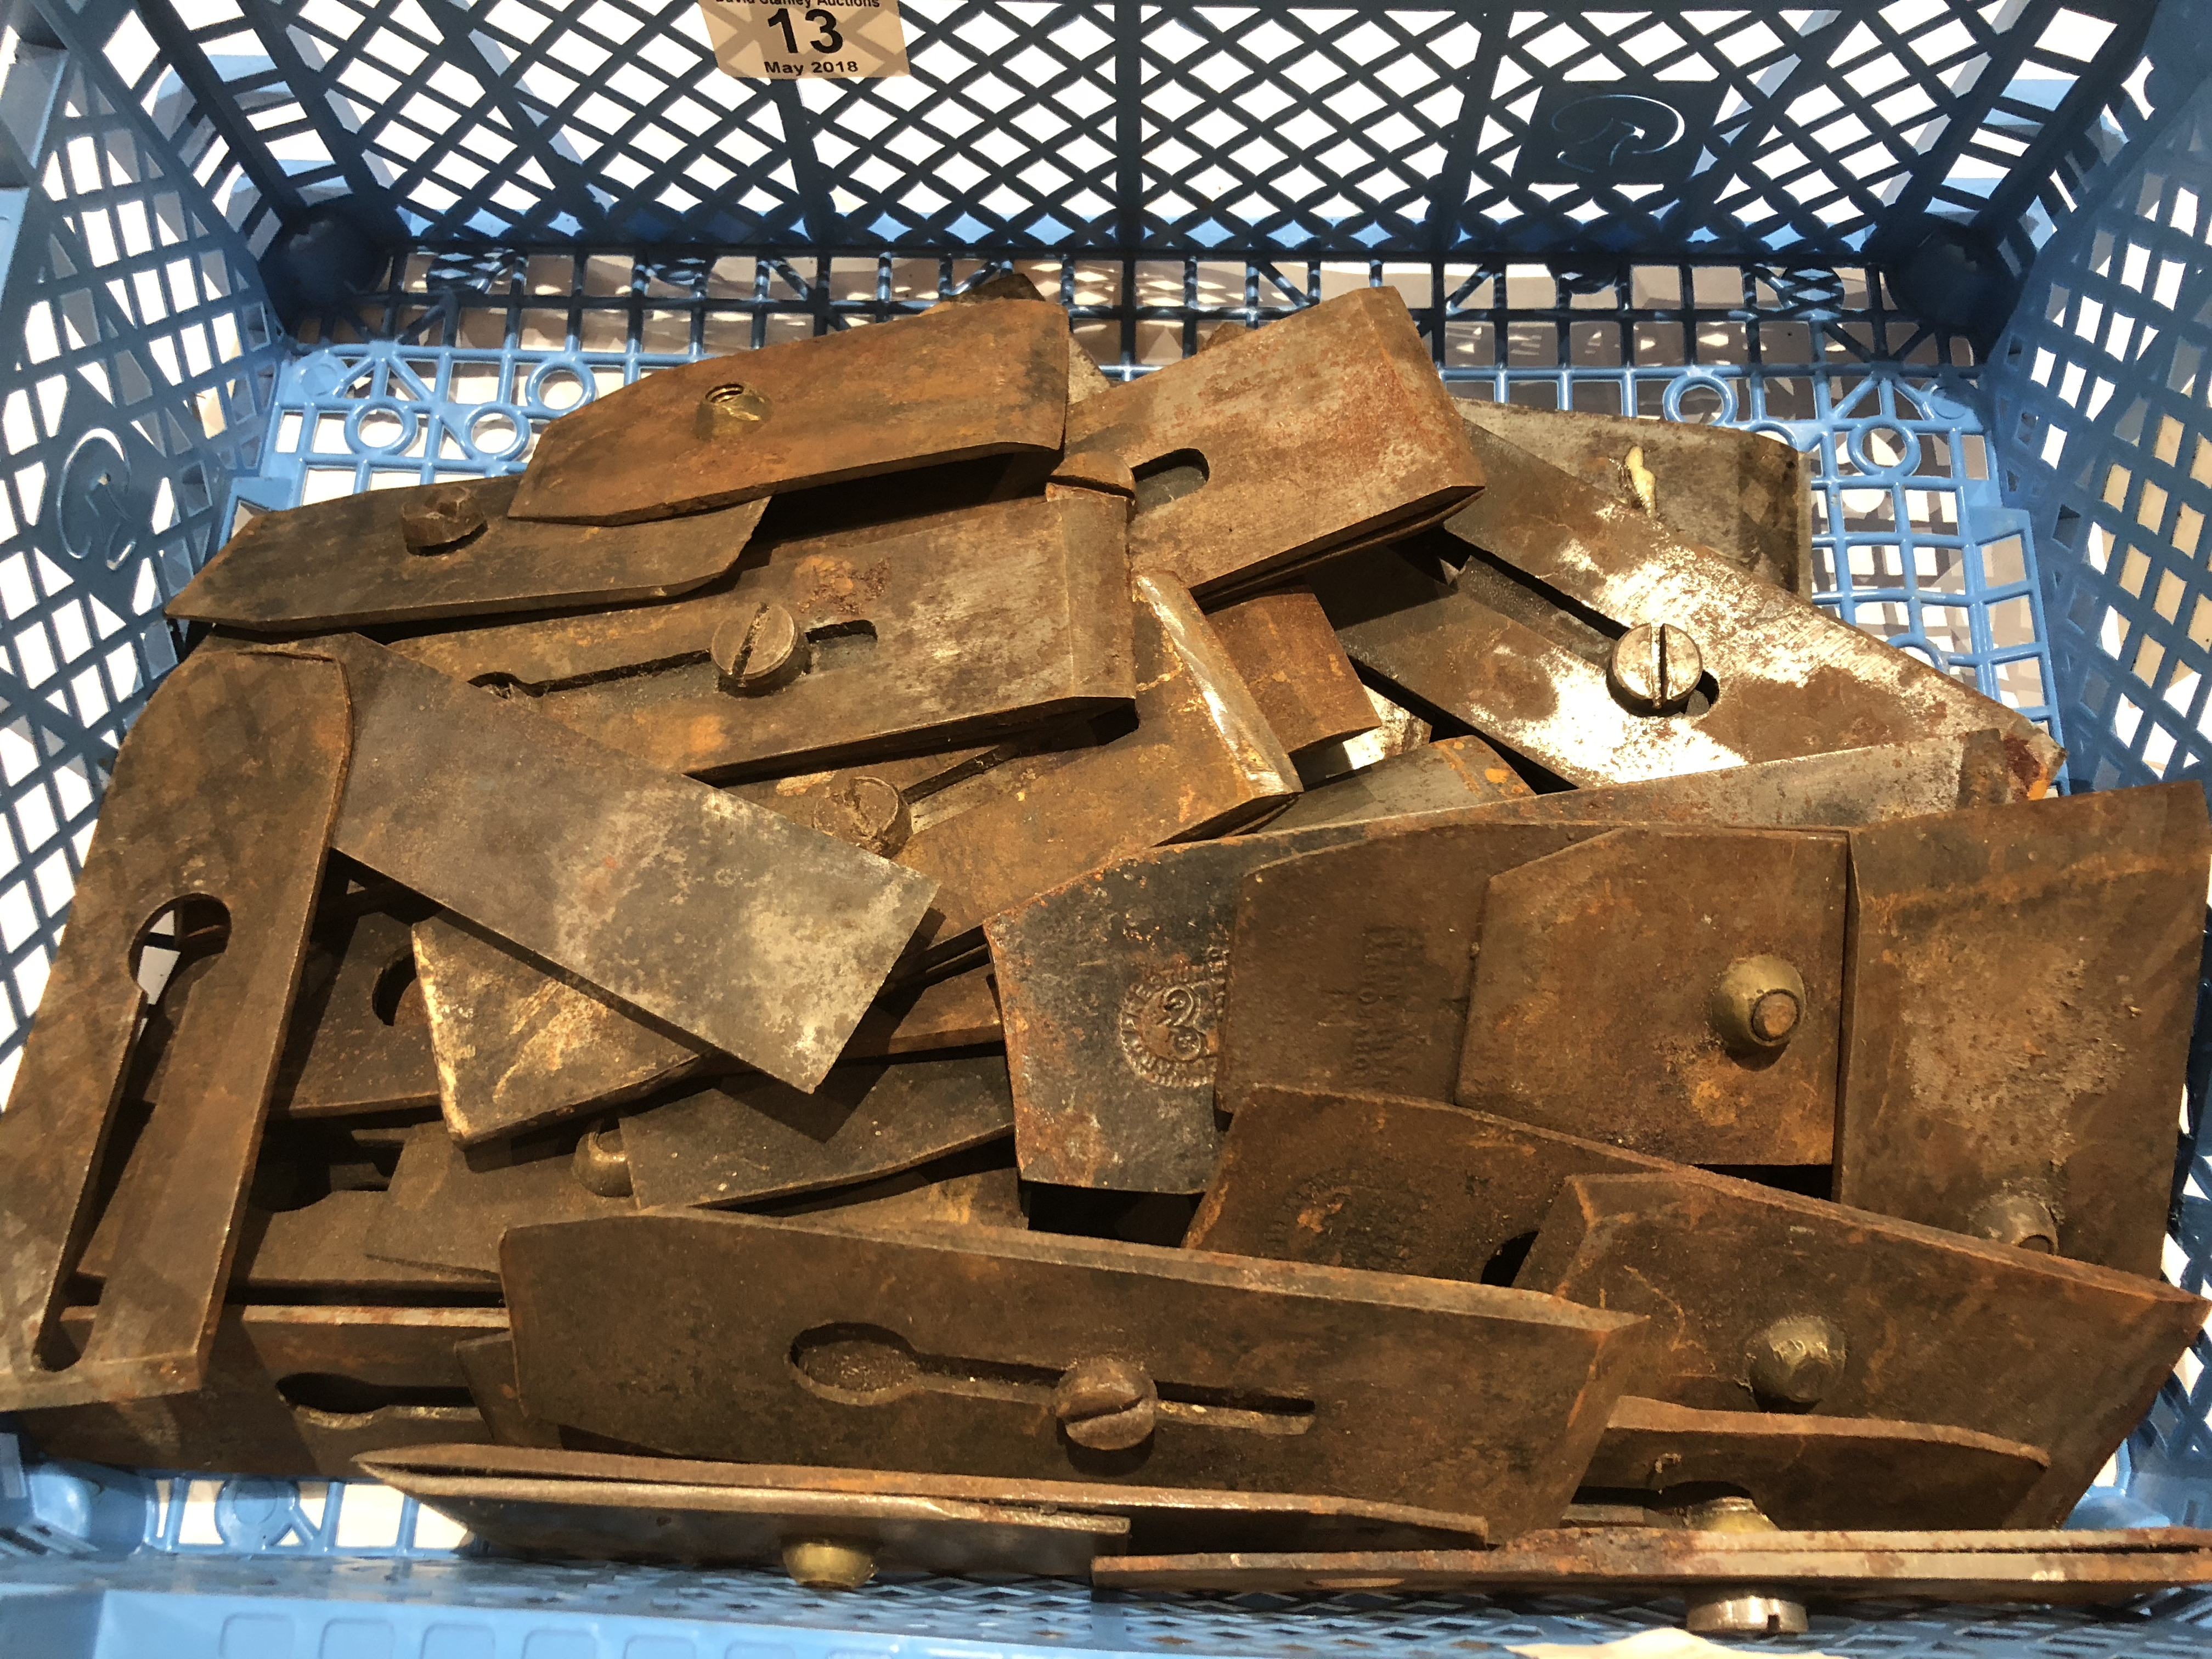 Lot 13 - A tray of plane irons